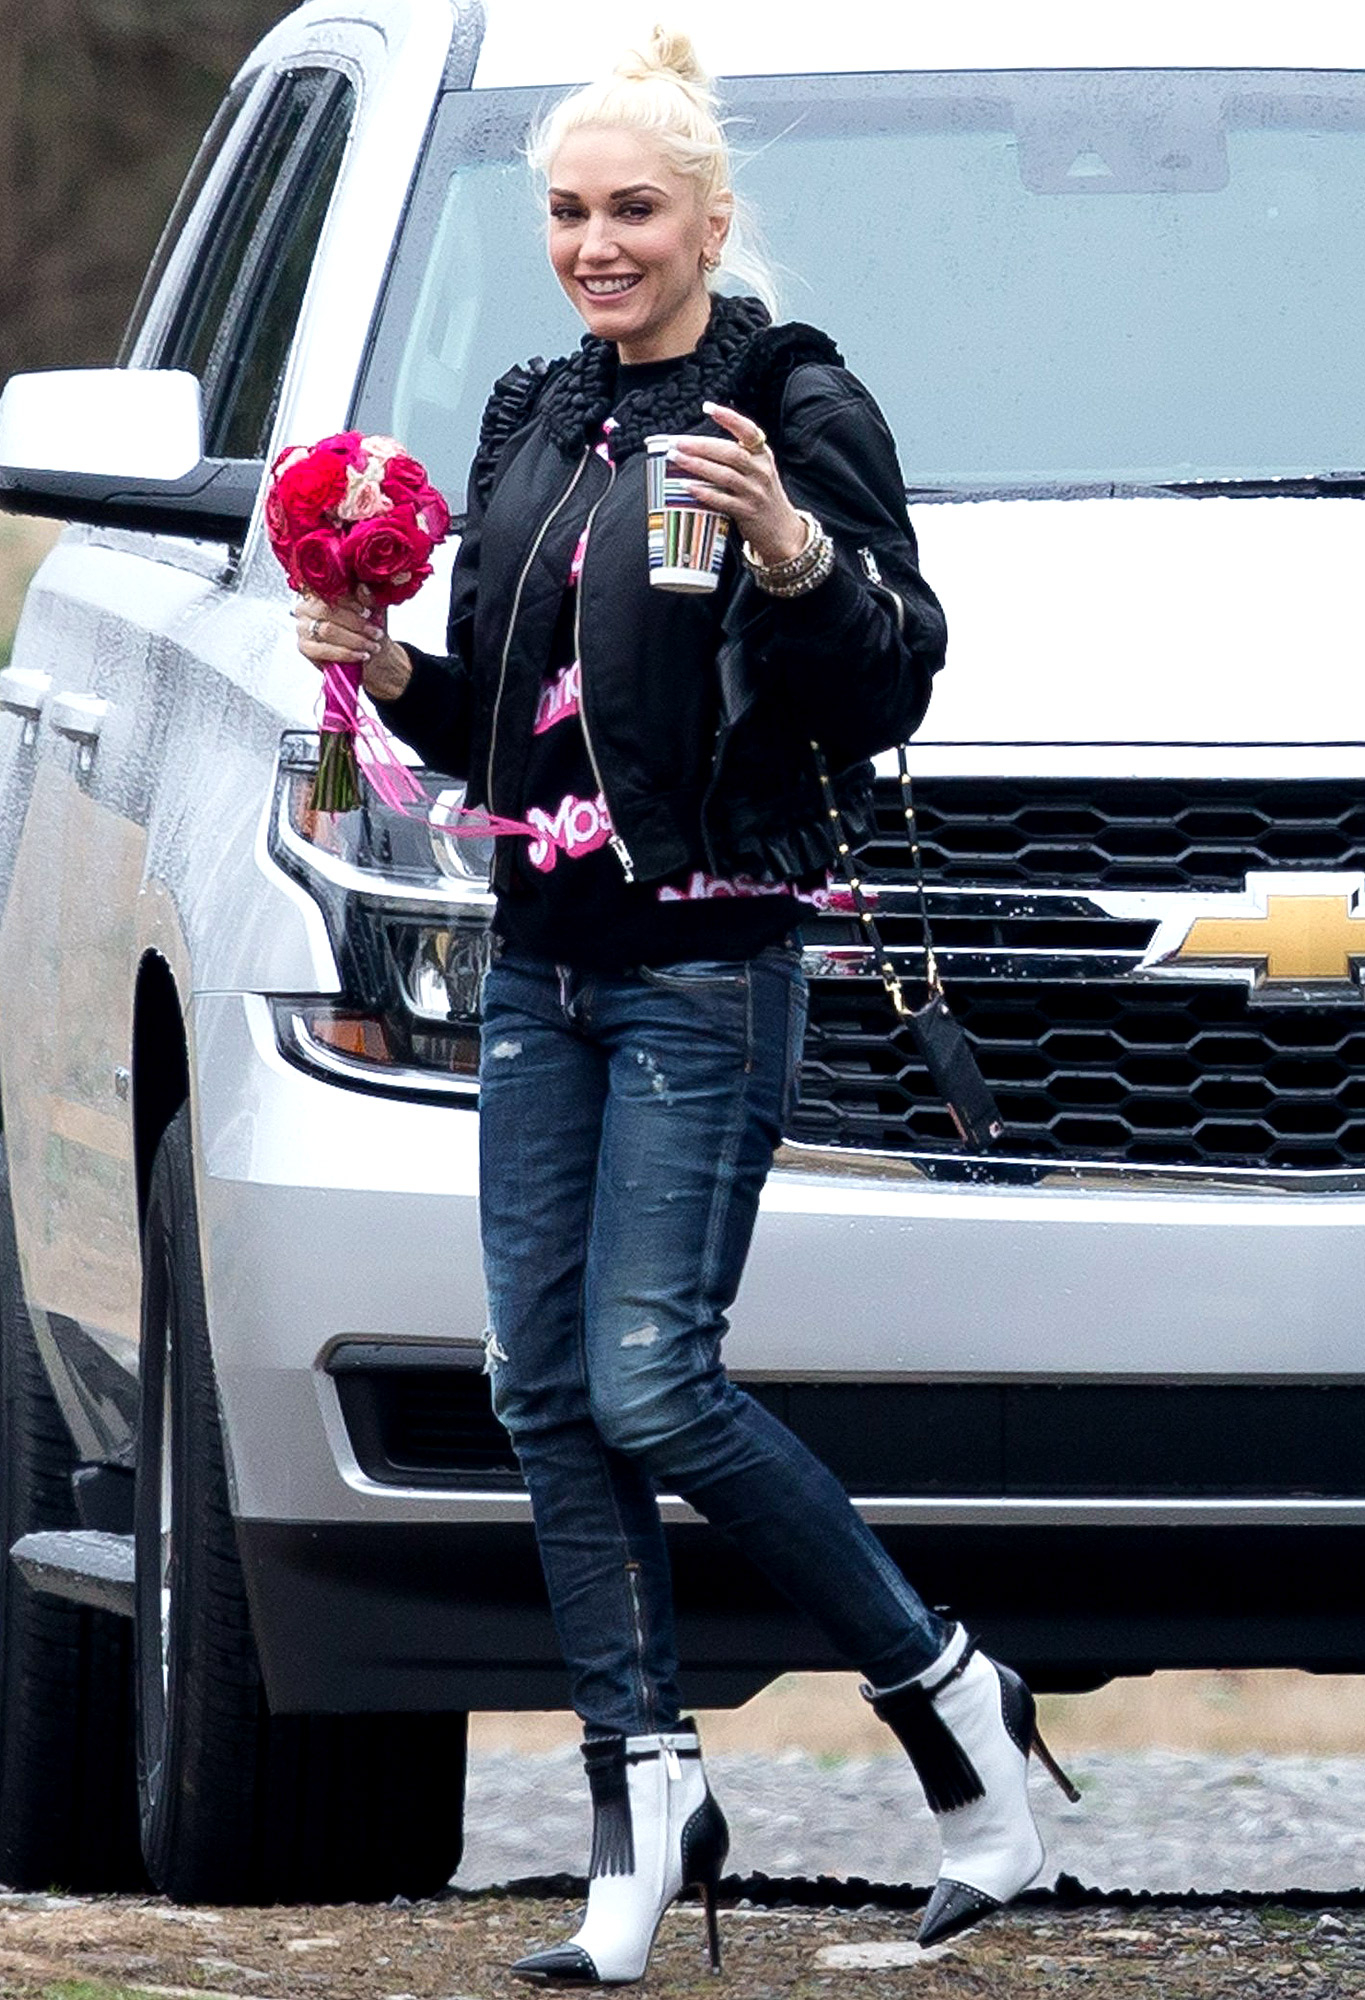 Gwen Stefani - Here comes the bride? Stefani attended the Nashville wedding of Shelton's hair stylist Amanda Craig in January — and she even nabbed the bouquet .